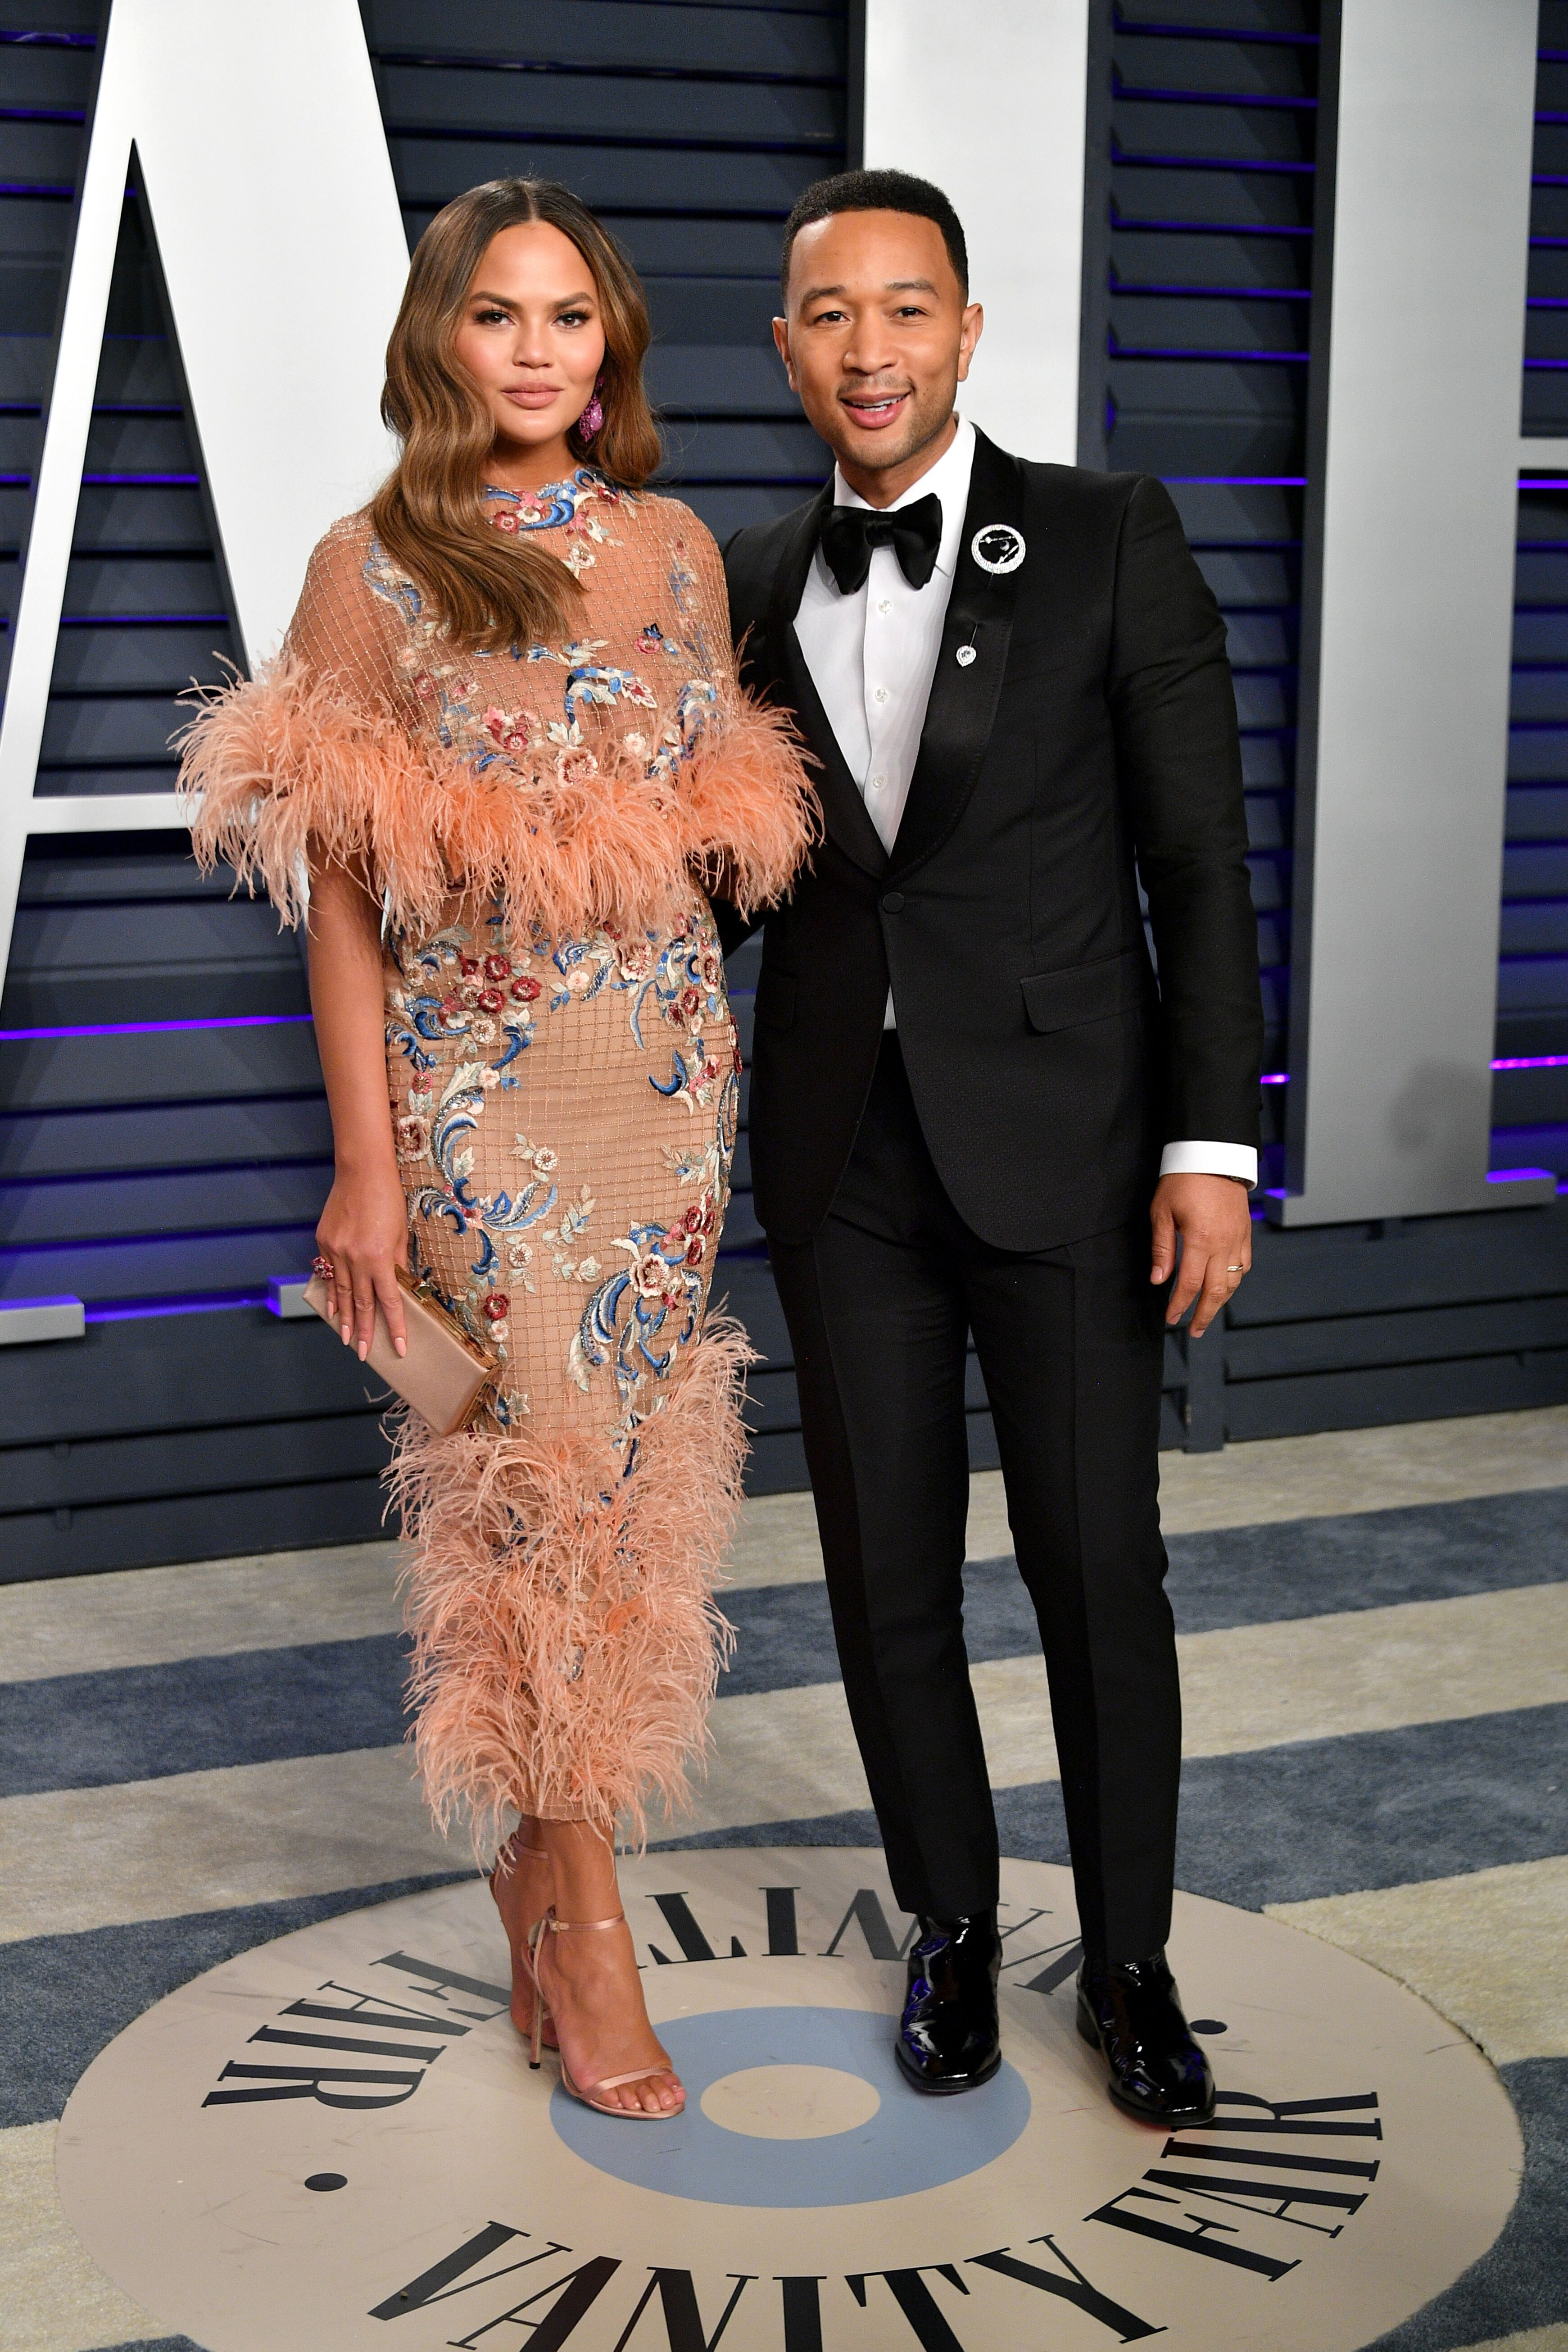 Chrissy Teigen and John Legend at the Vanity Fair Oscar Party on February 24, 2019, in Beverly Hills, California | Photo: Dia Dipasupil/Getty Images